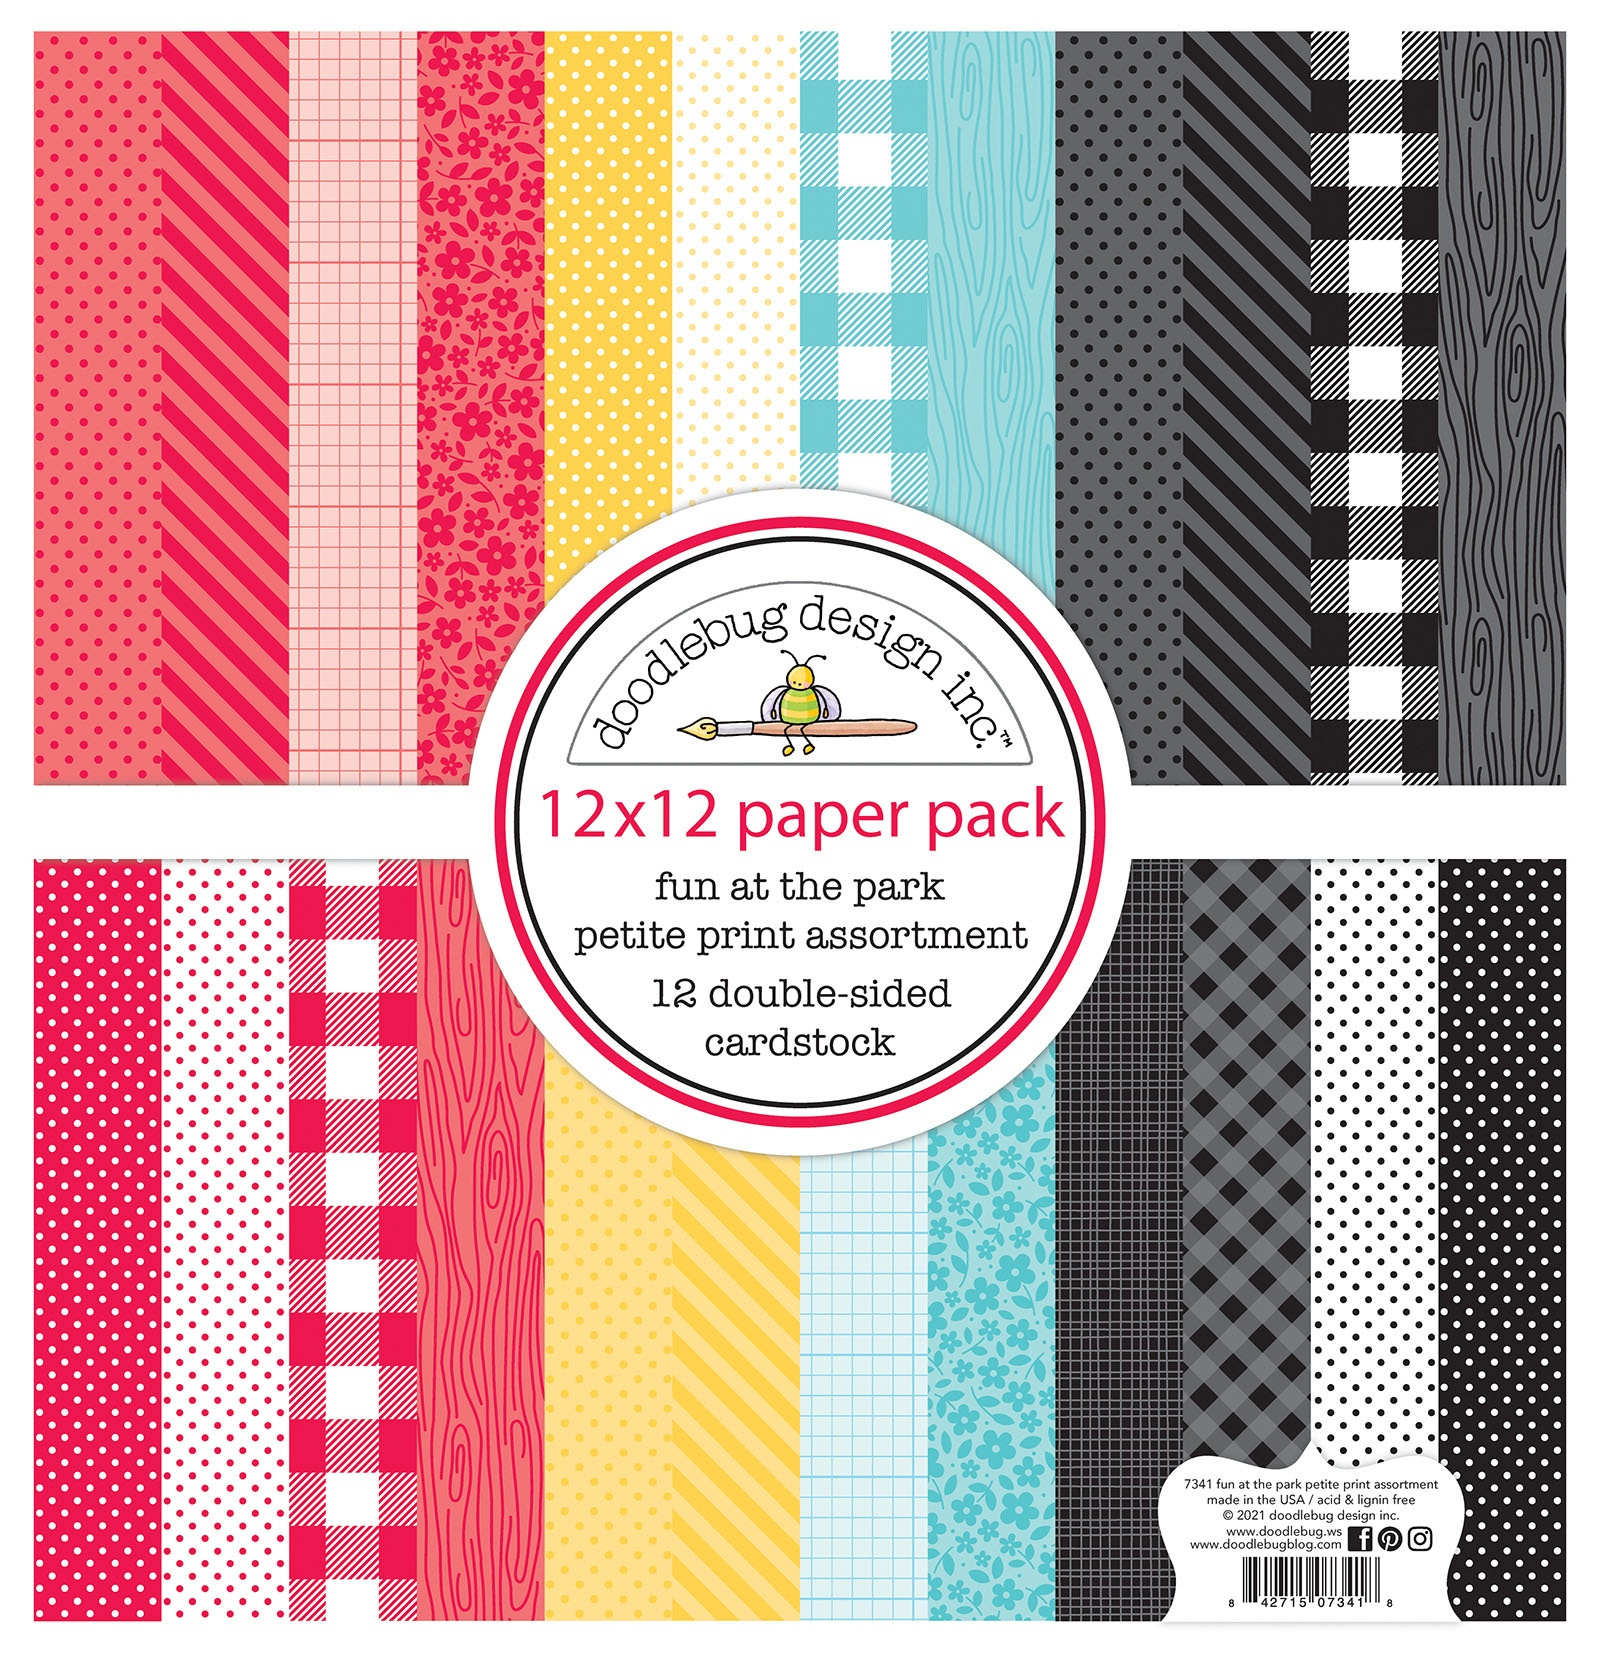 Doodlebug Petite Prints Double-Sided Cardstock 12X12 12/Pk-Fun At The Park, 12...